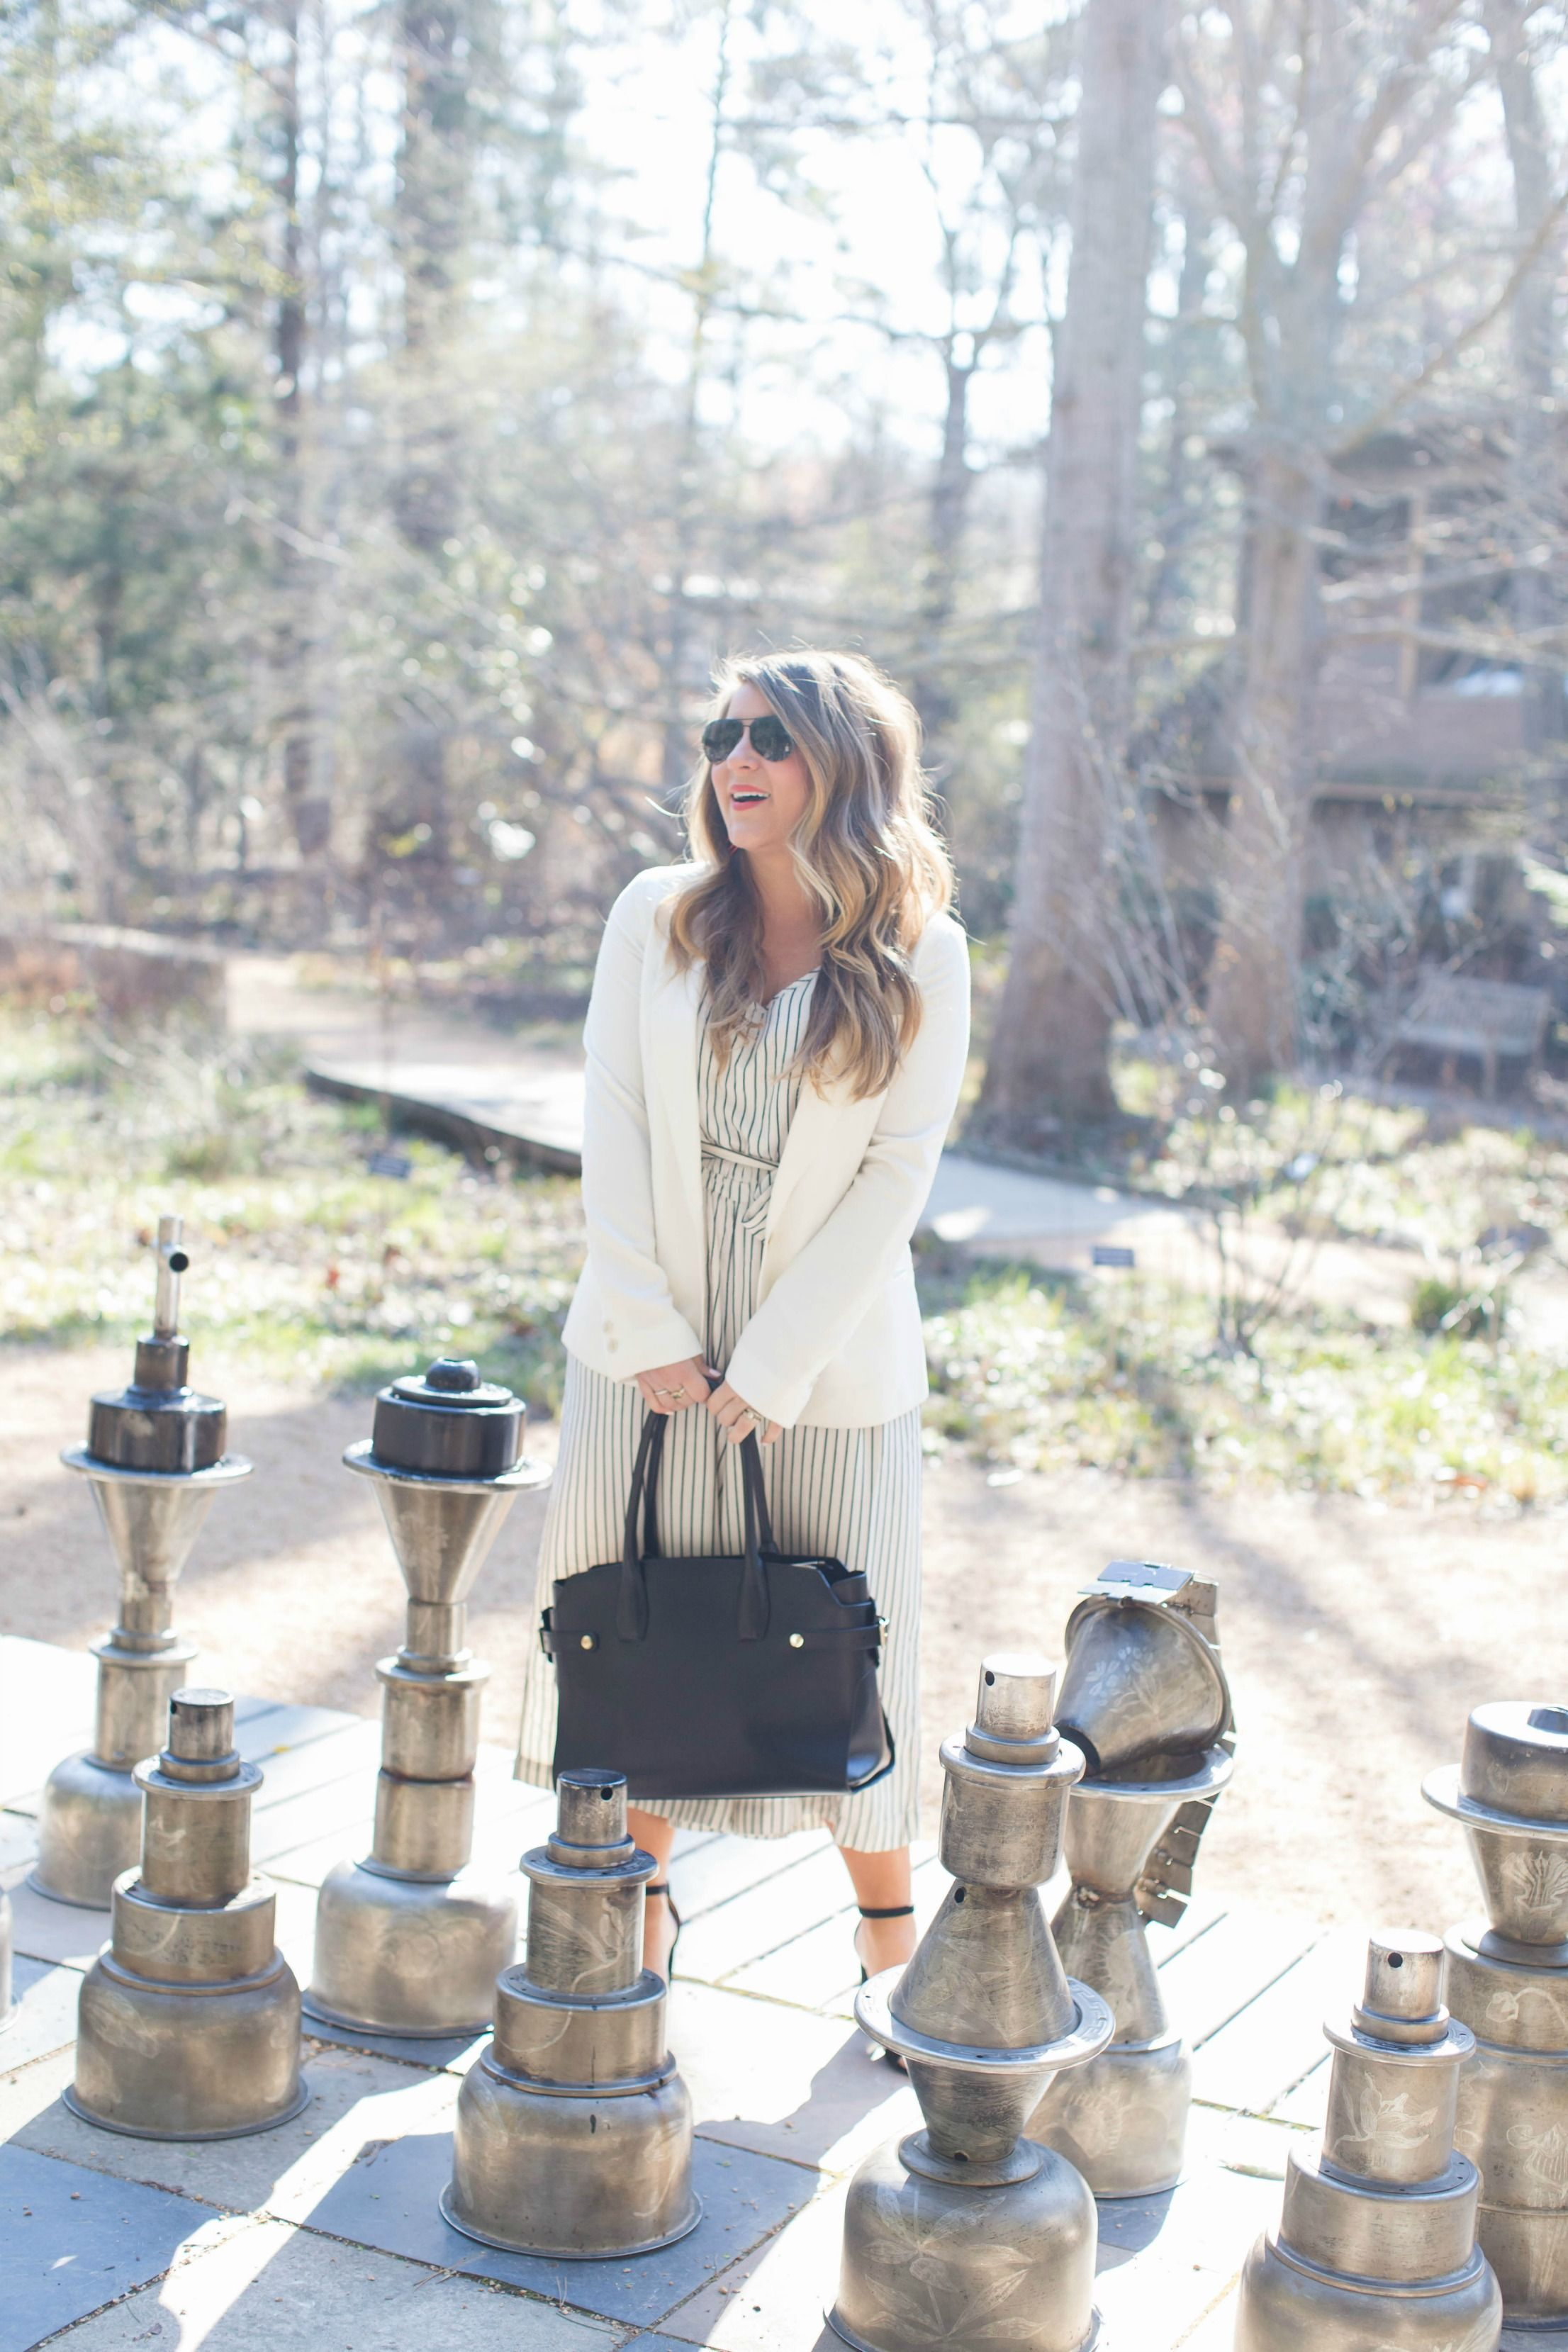 jumpsuit for petitie girls | Fashion blog blogger photo photographer photography